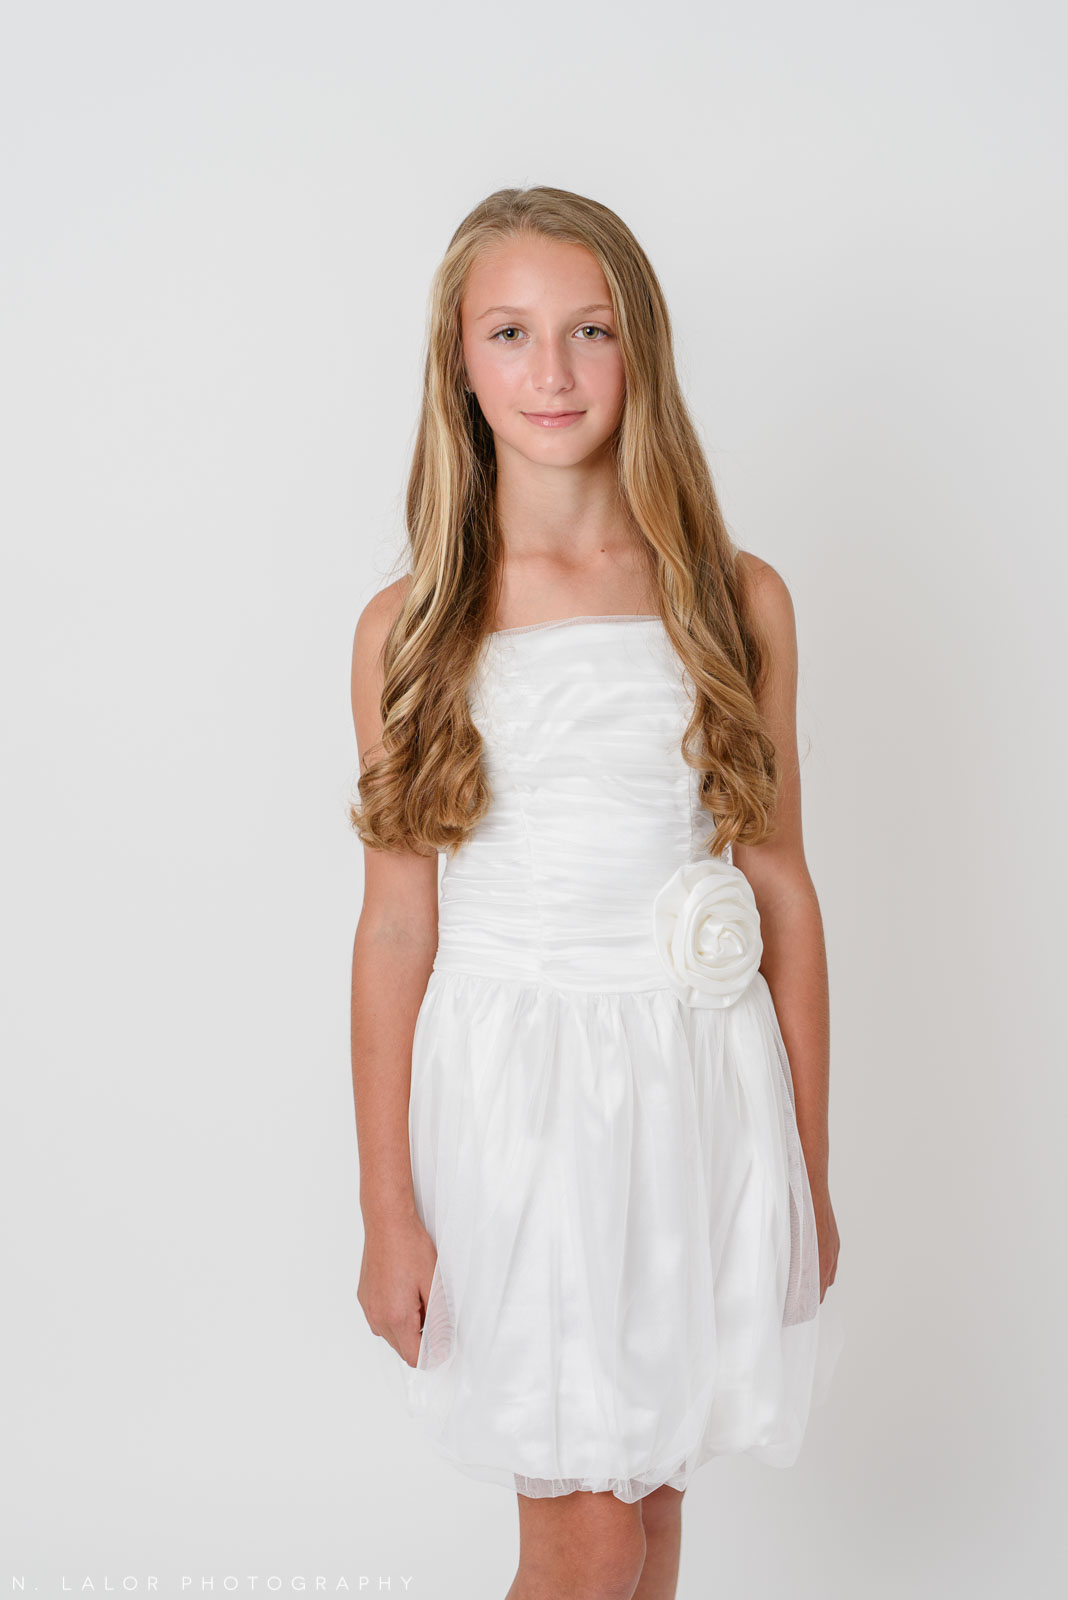 Amazing in white. Stella M'Lia tween fashion photoshoot with N. Lalor Photography in Greenwich, Connecticut.